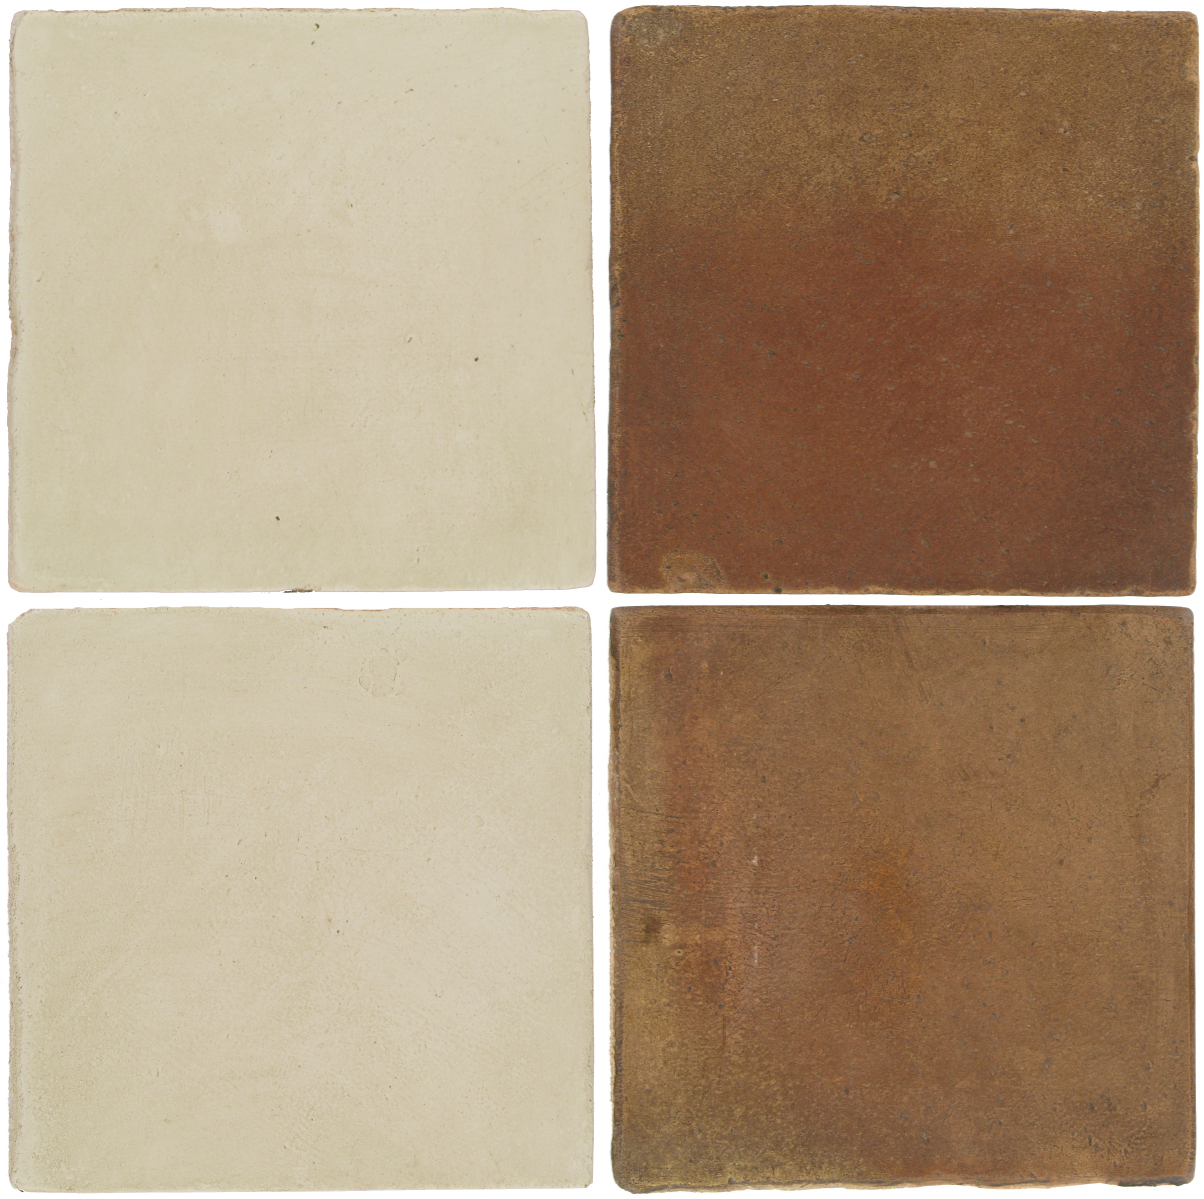 Pedralbes Antique Terracotta  2 Color Combinations  OHS-PGLW Glacier White + OHS-PSCM Camel Brown